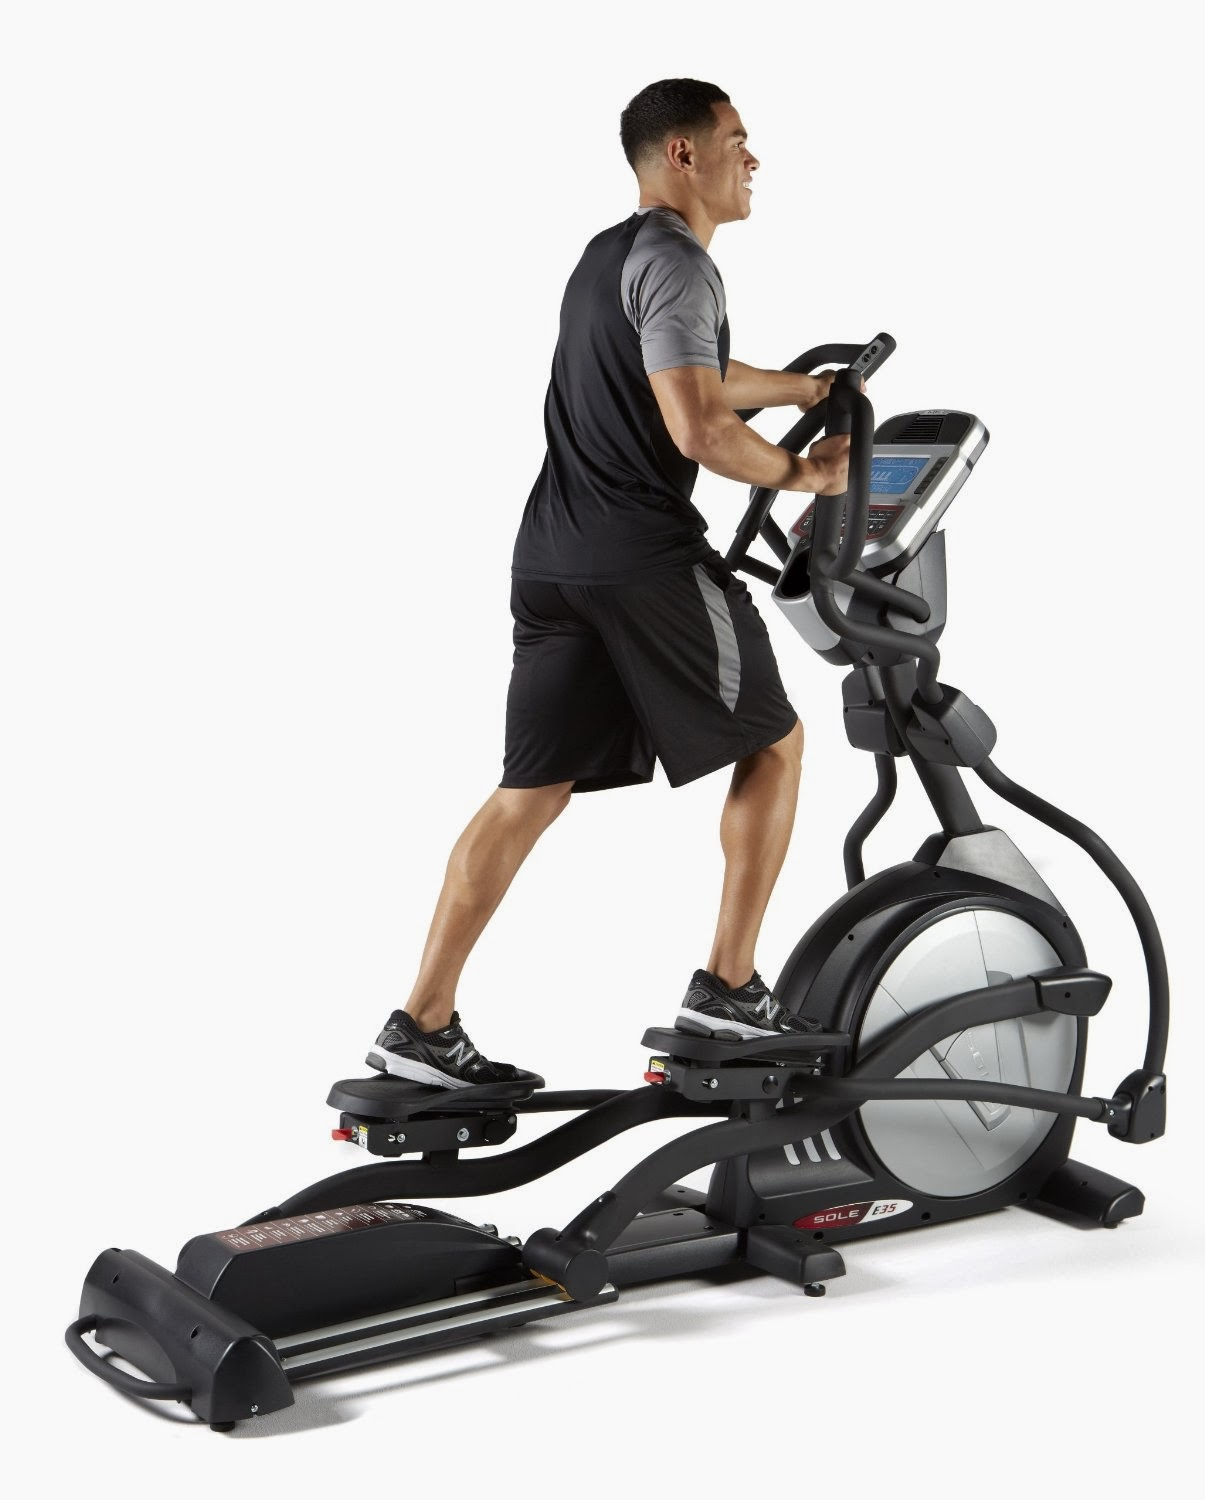 Fitness Machines: Health And Fitness Den: Comparing Sole Fitness E95 Versus